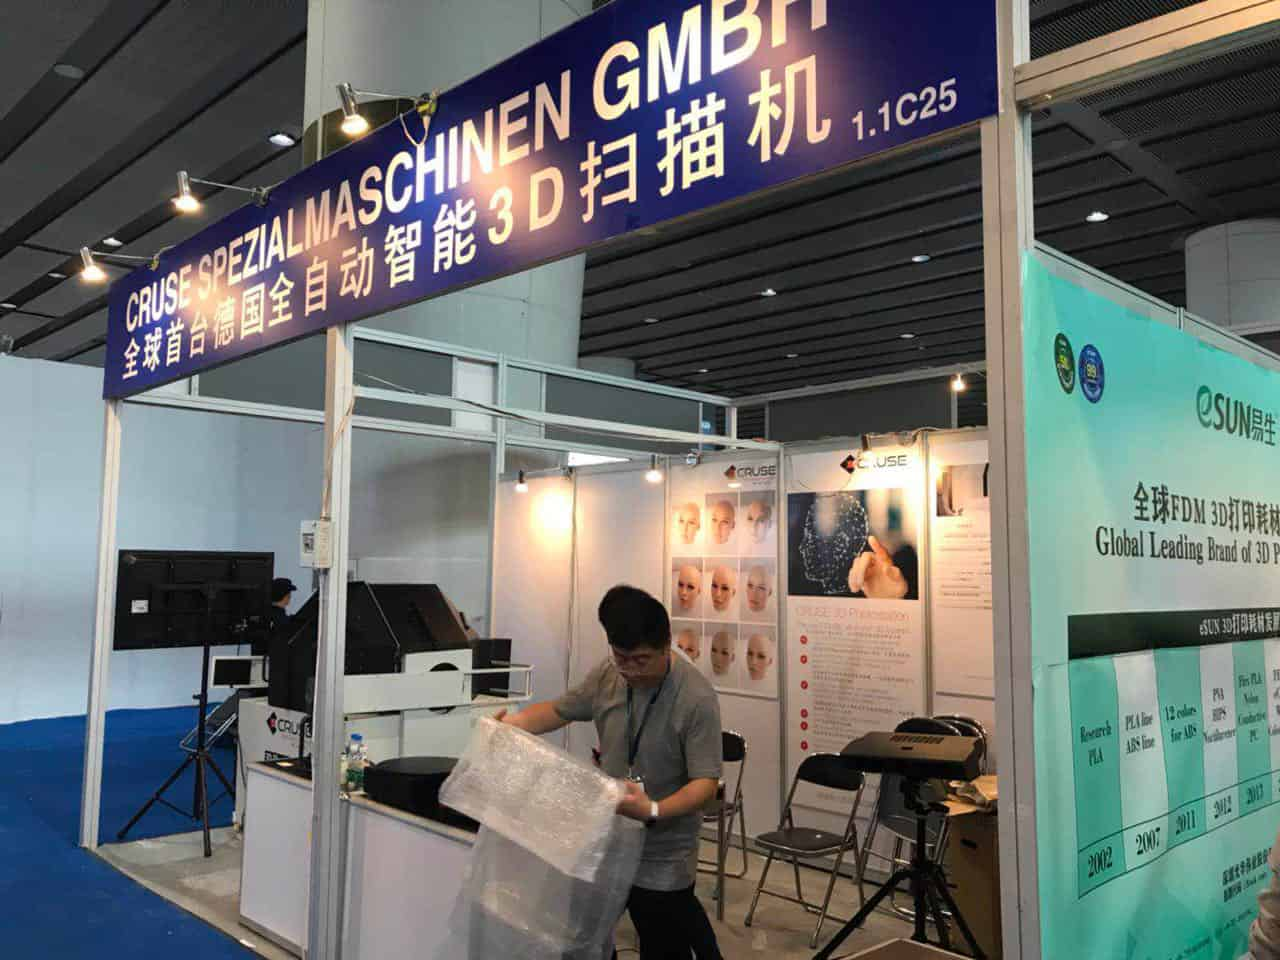 D Printing Exhibition Birmingham : Cruse at asia d printing exhibition in guangzhou